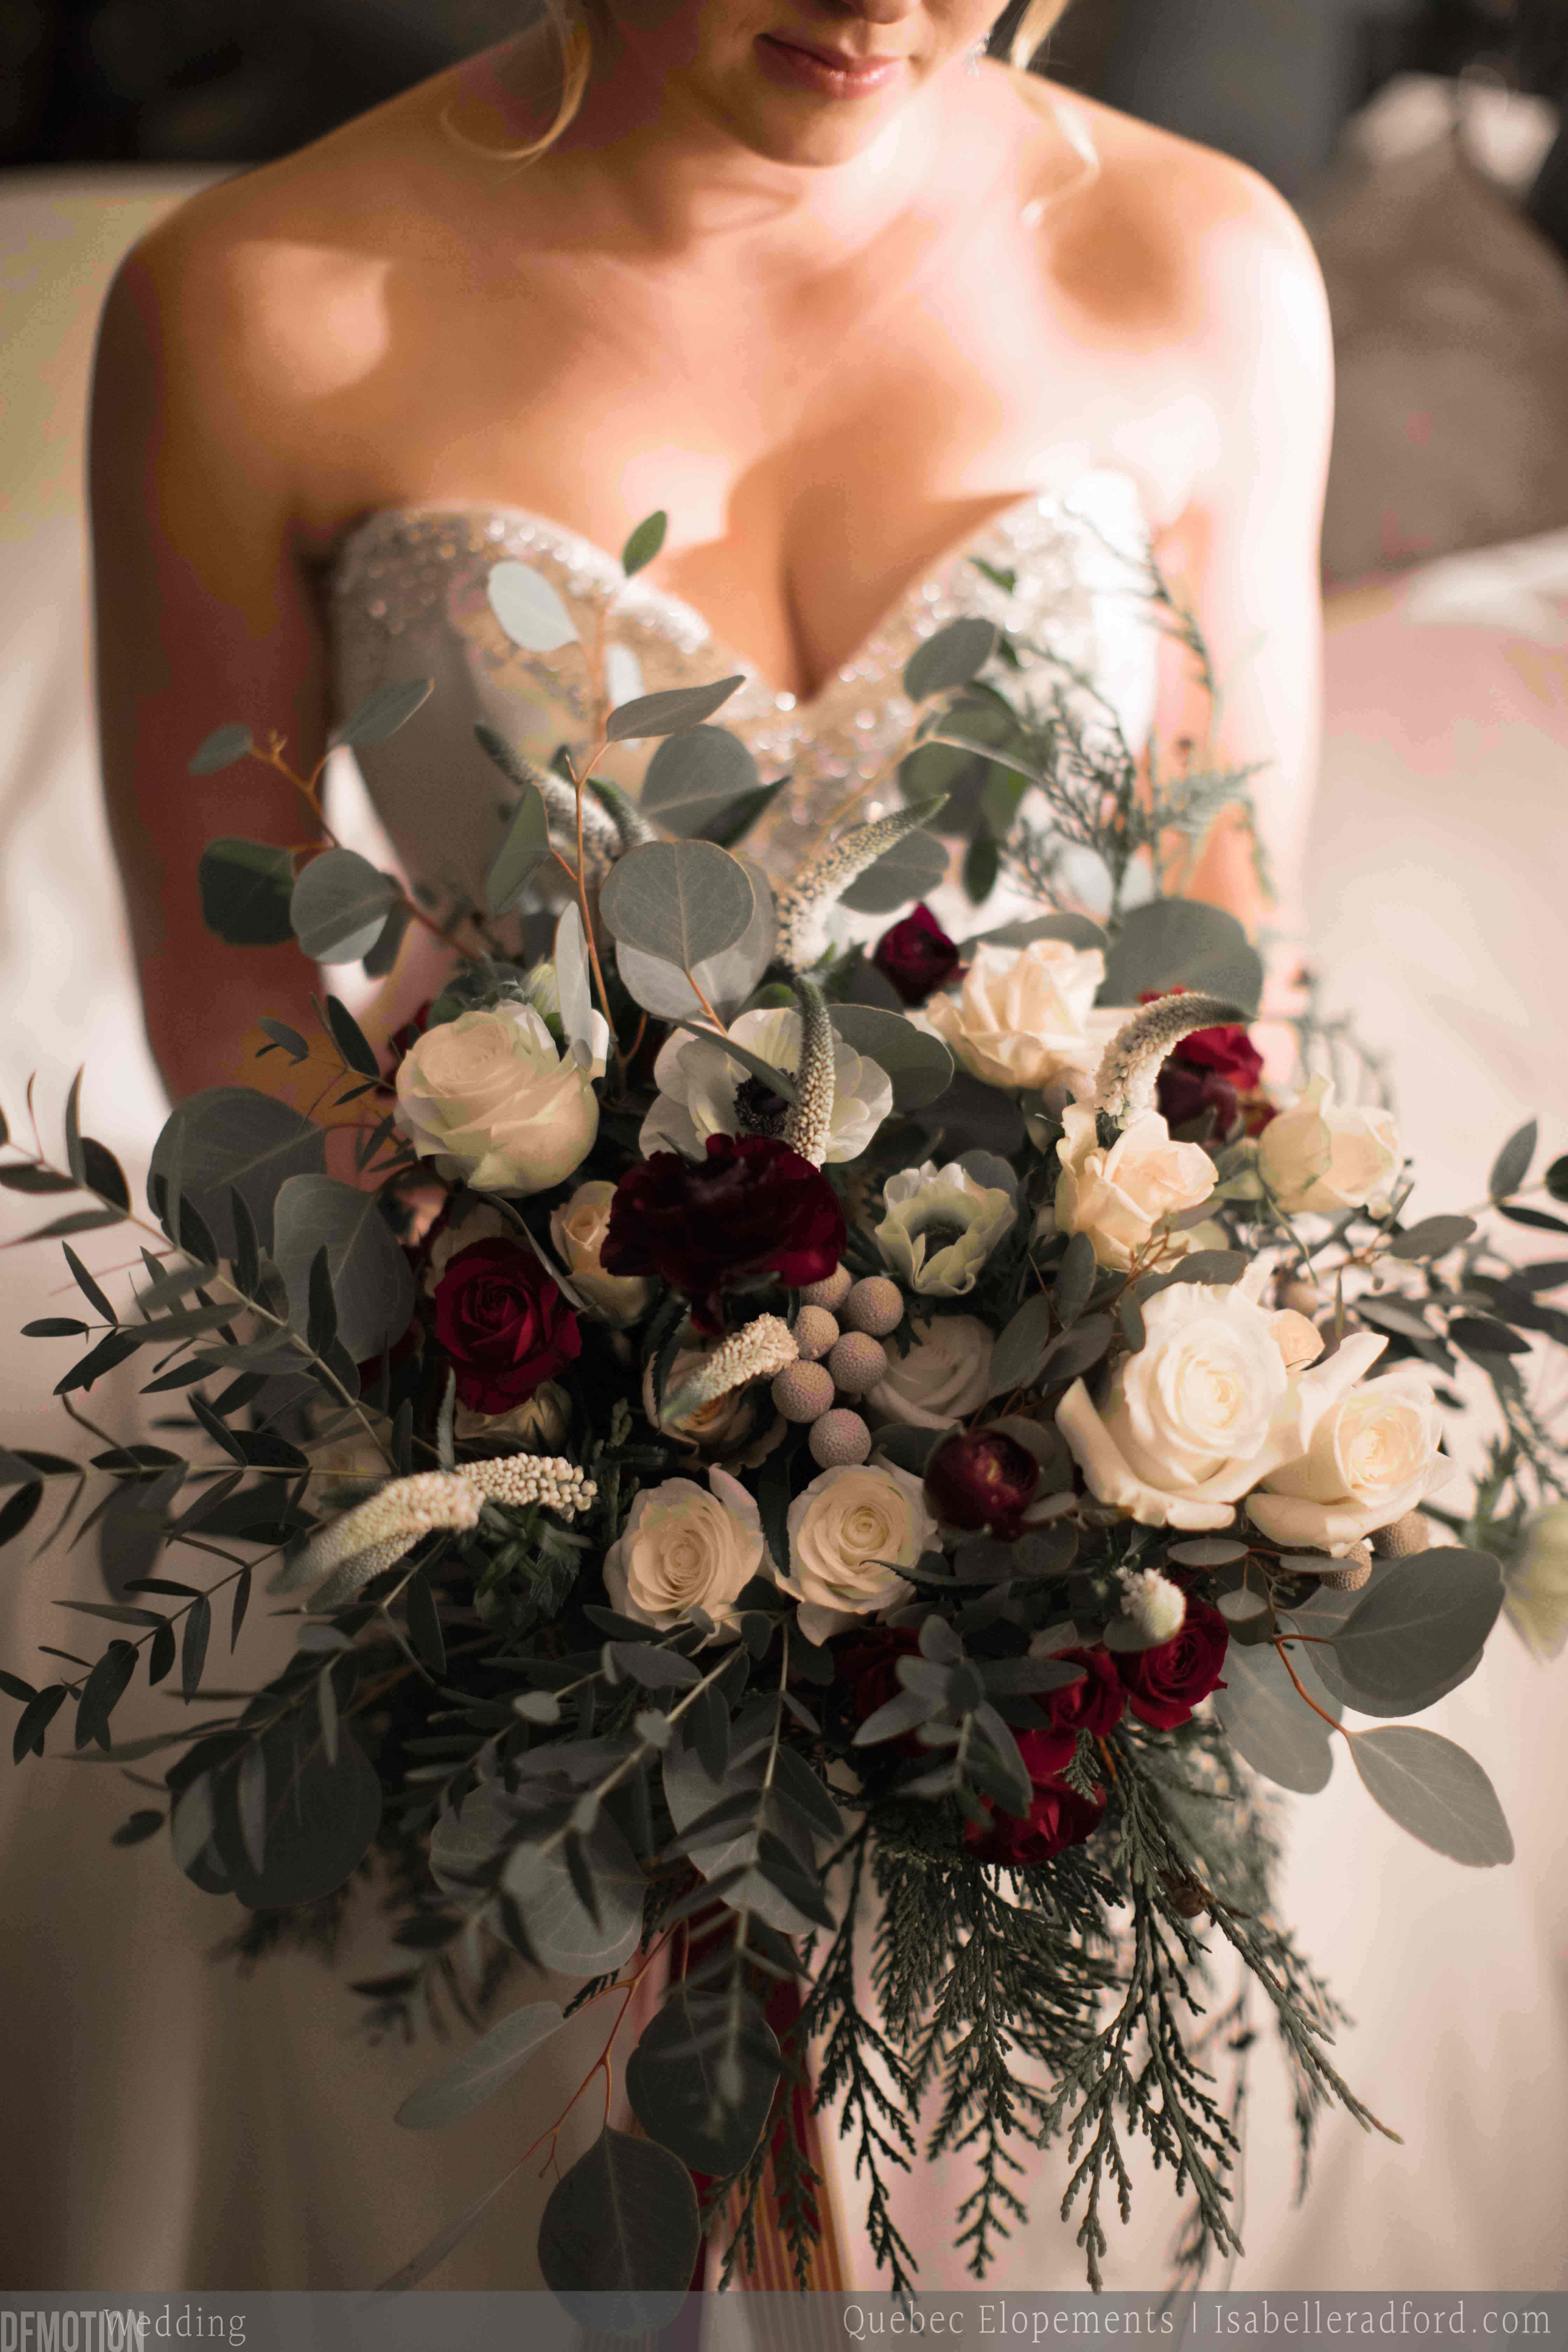 wedding bouquets boutonnieres decor mariages intimes quebec elopements part 2. Black Bedroom Furniture Sets. Home Design Ideas